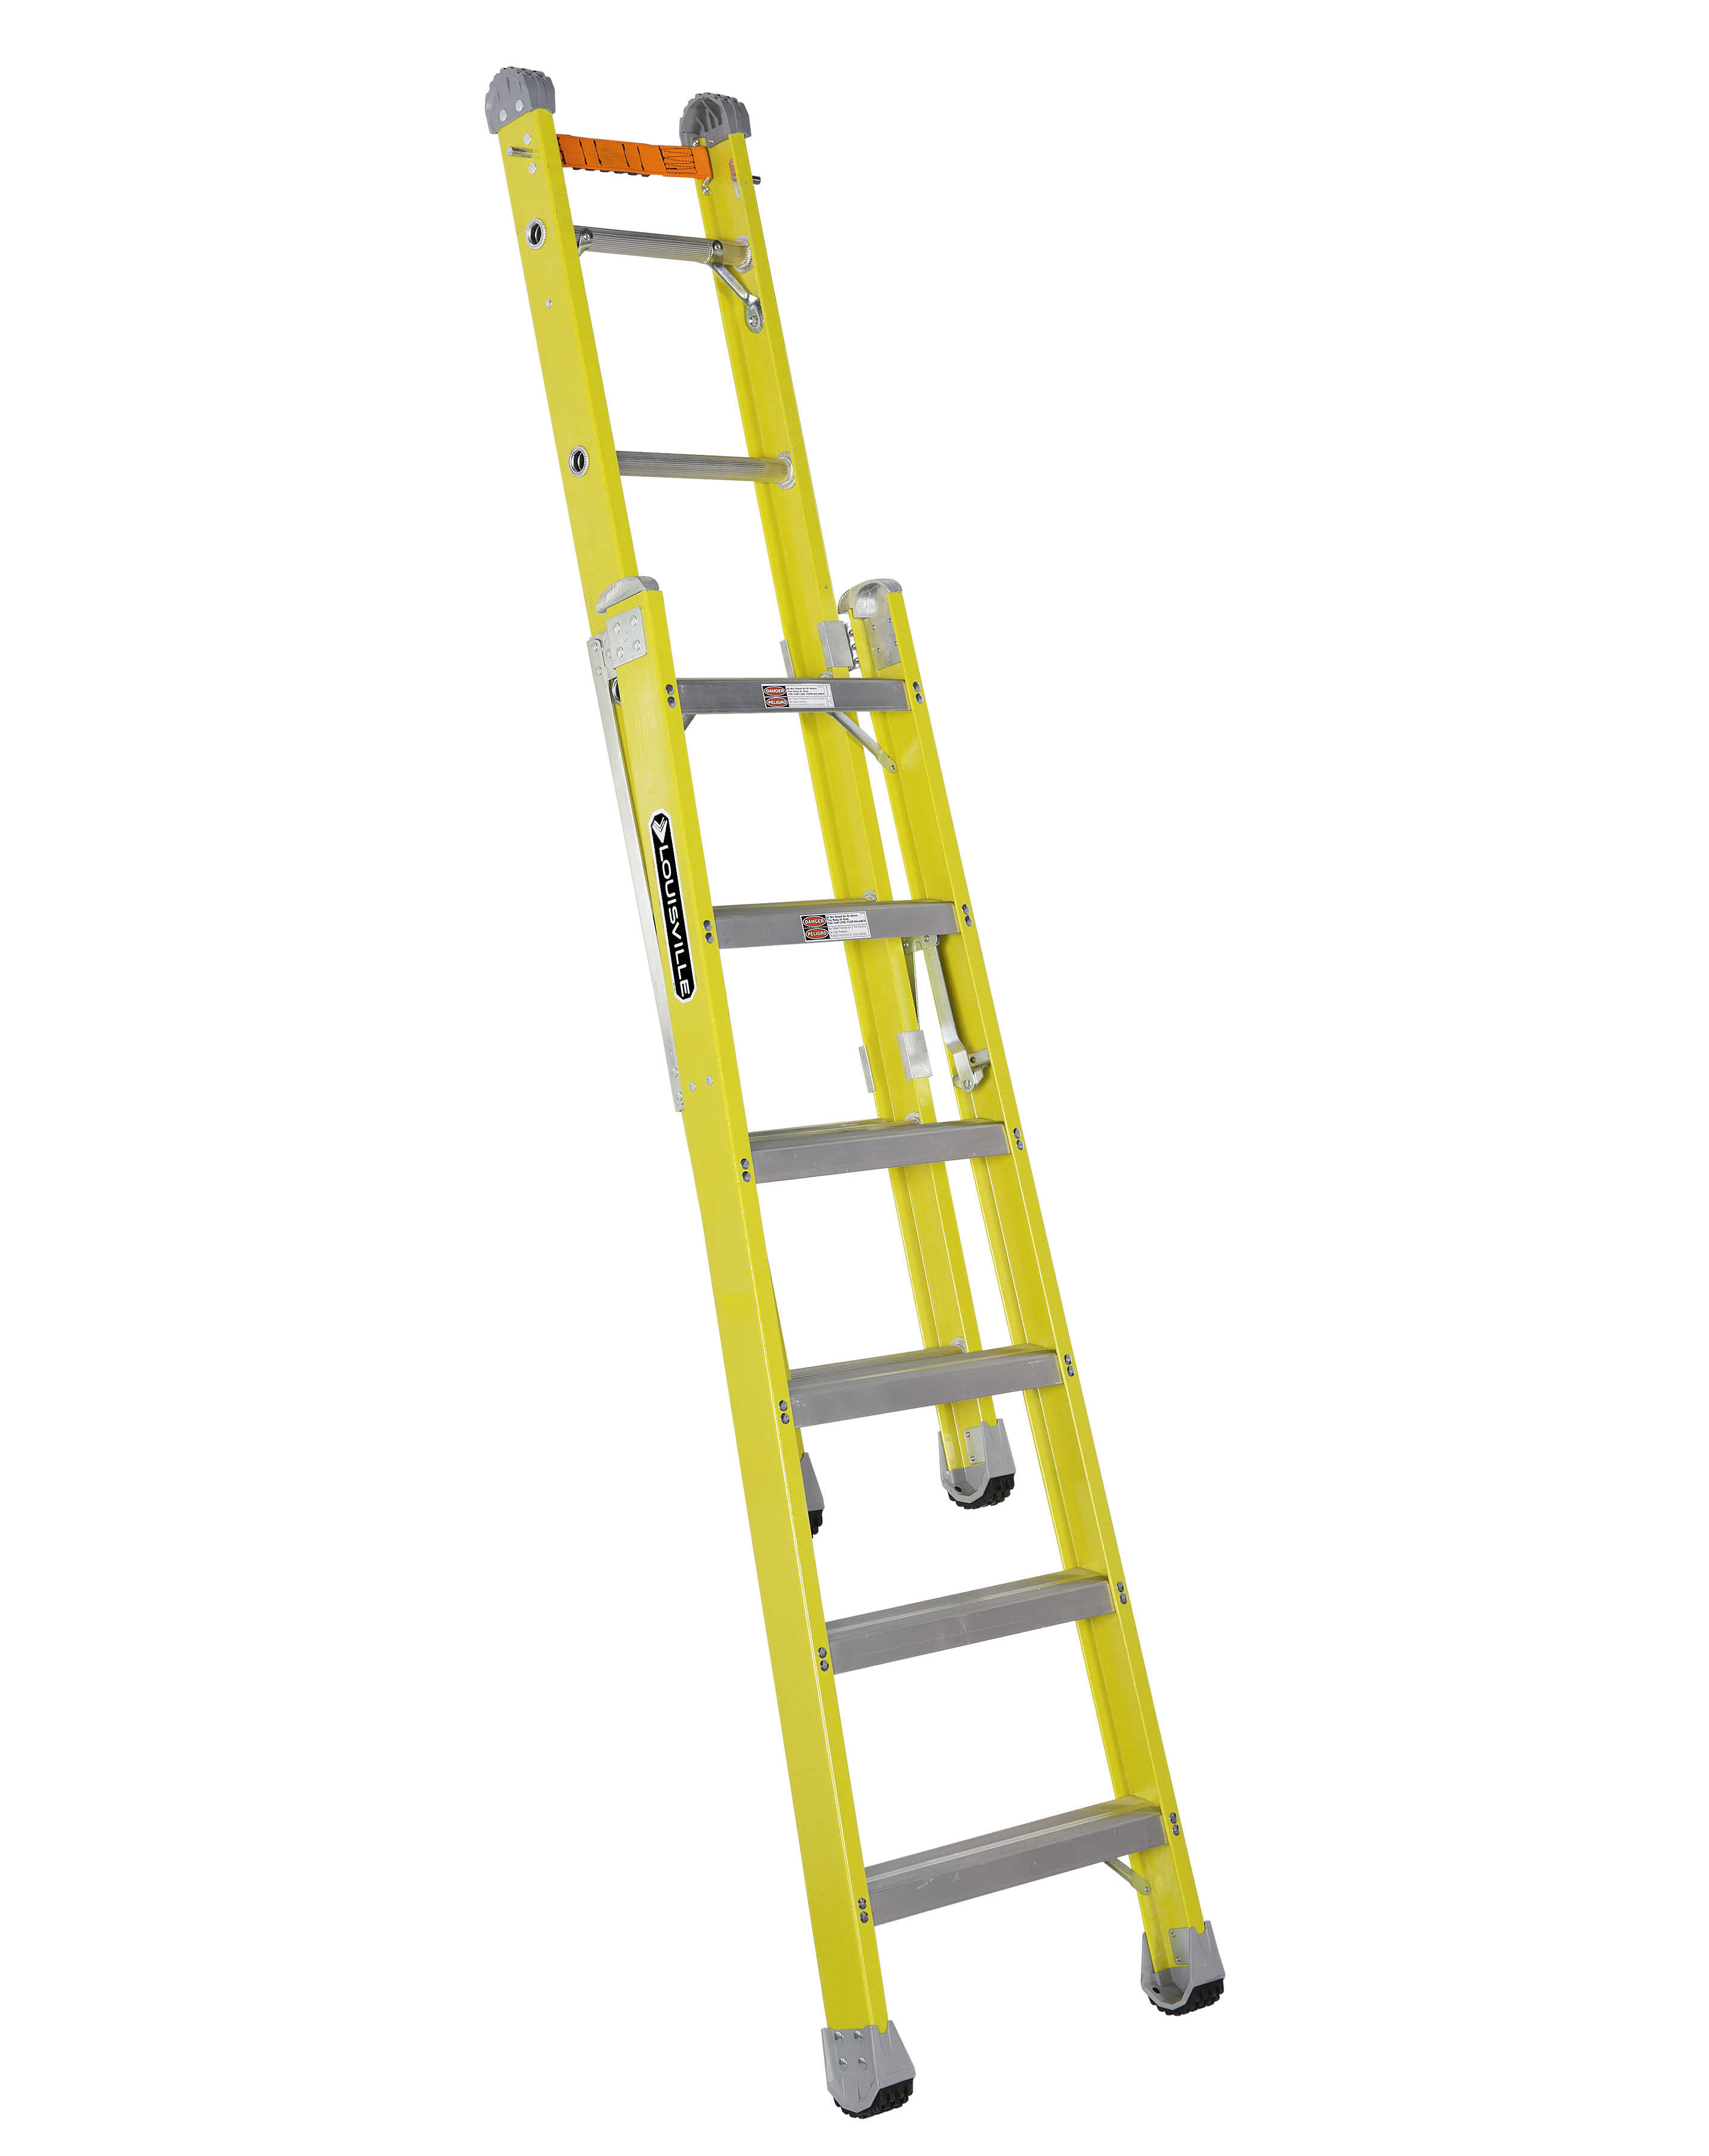 Louisville Ladder FXC1206 6 ft. Fiberglass Combination Ladder, Type IAA, 375 Lbs Load Capacity